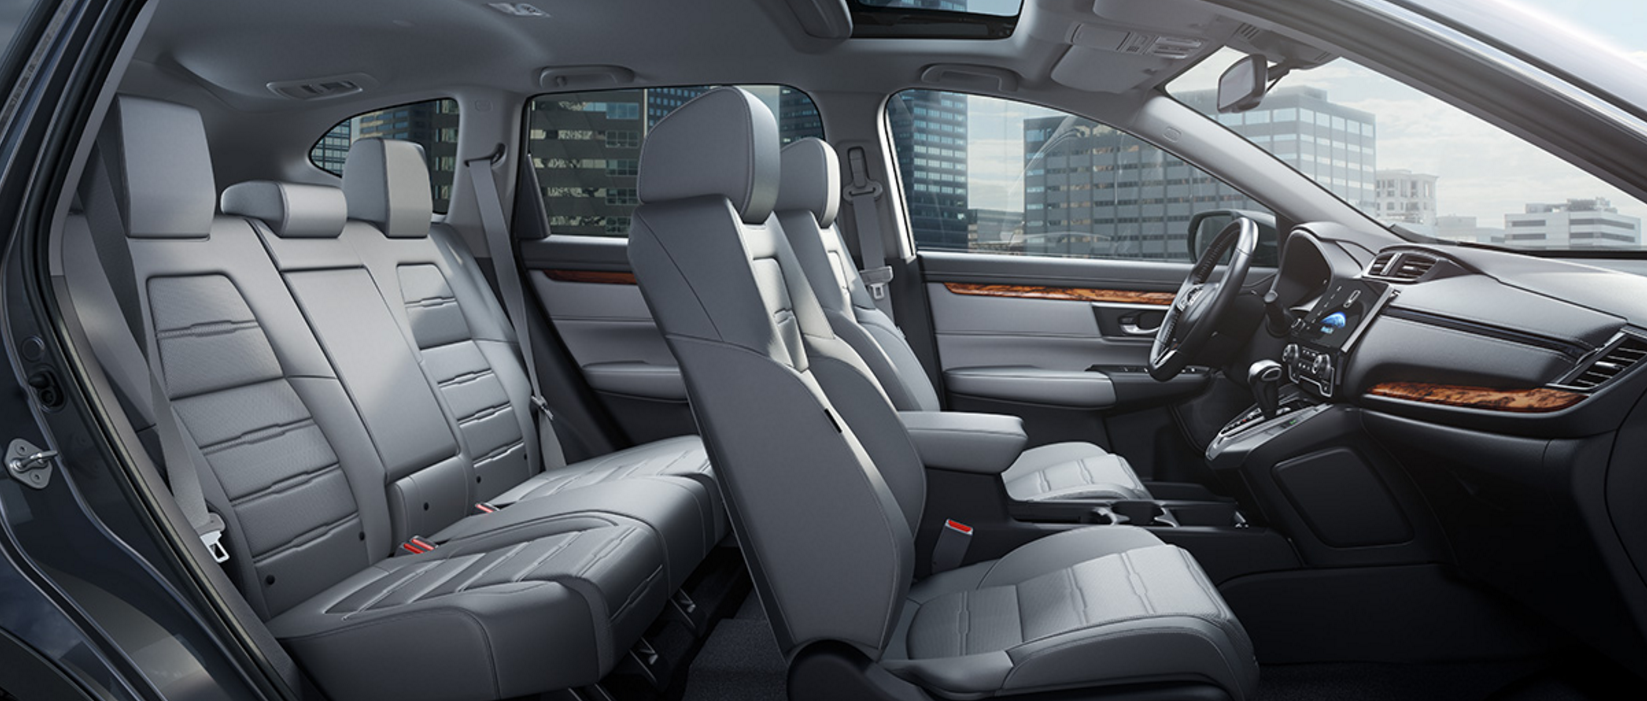 Valley Chevy - Top-Rated SUVs to Buy: Honda CR-V - Interior